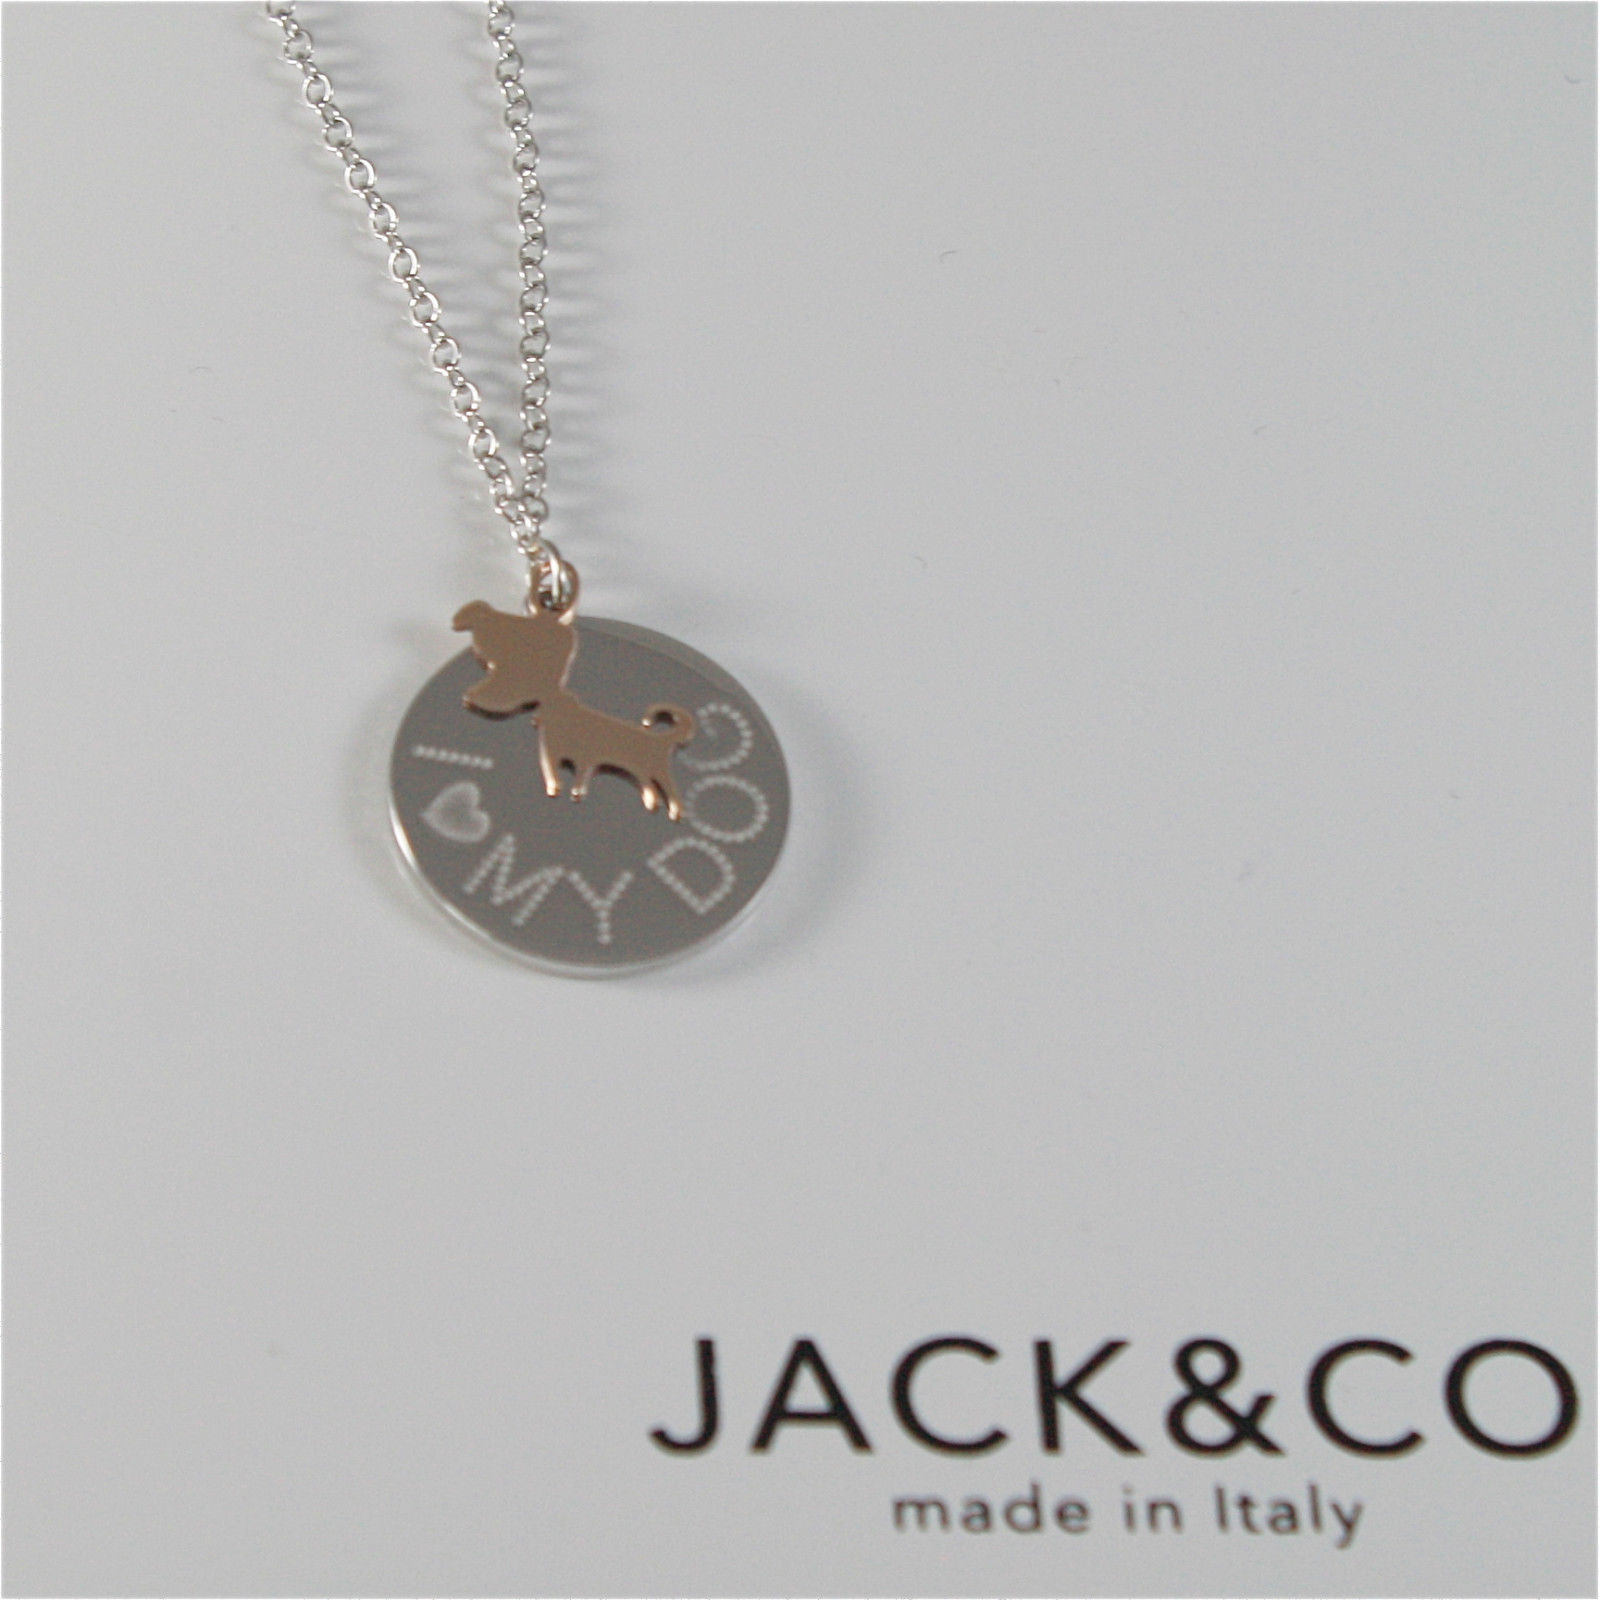 925 RHODIUM SILVER JACK&CO NECKLACE 9KT ROSE GOLD DOG JACK RUSSEL MADE IN ITALY